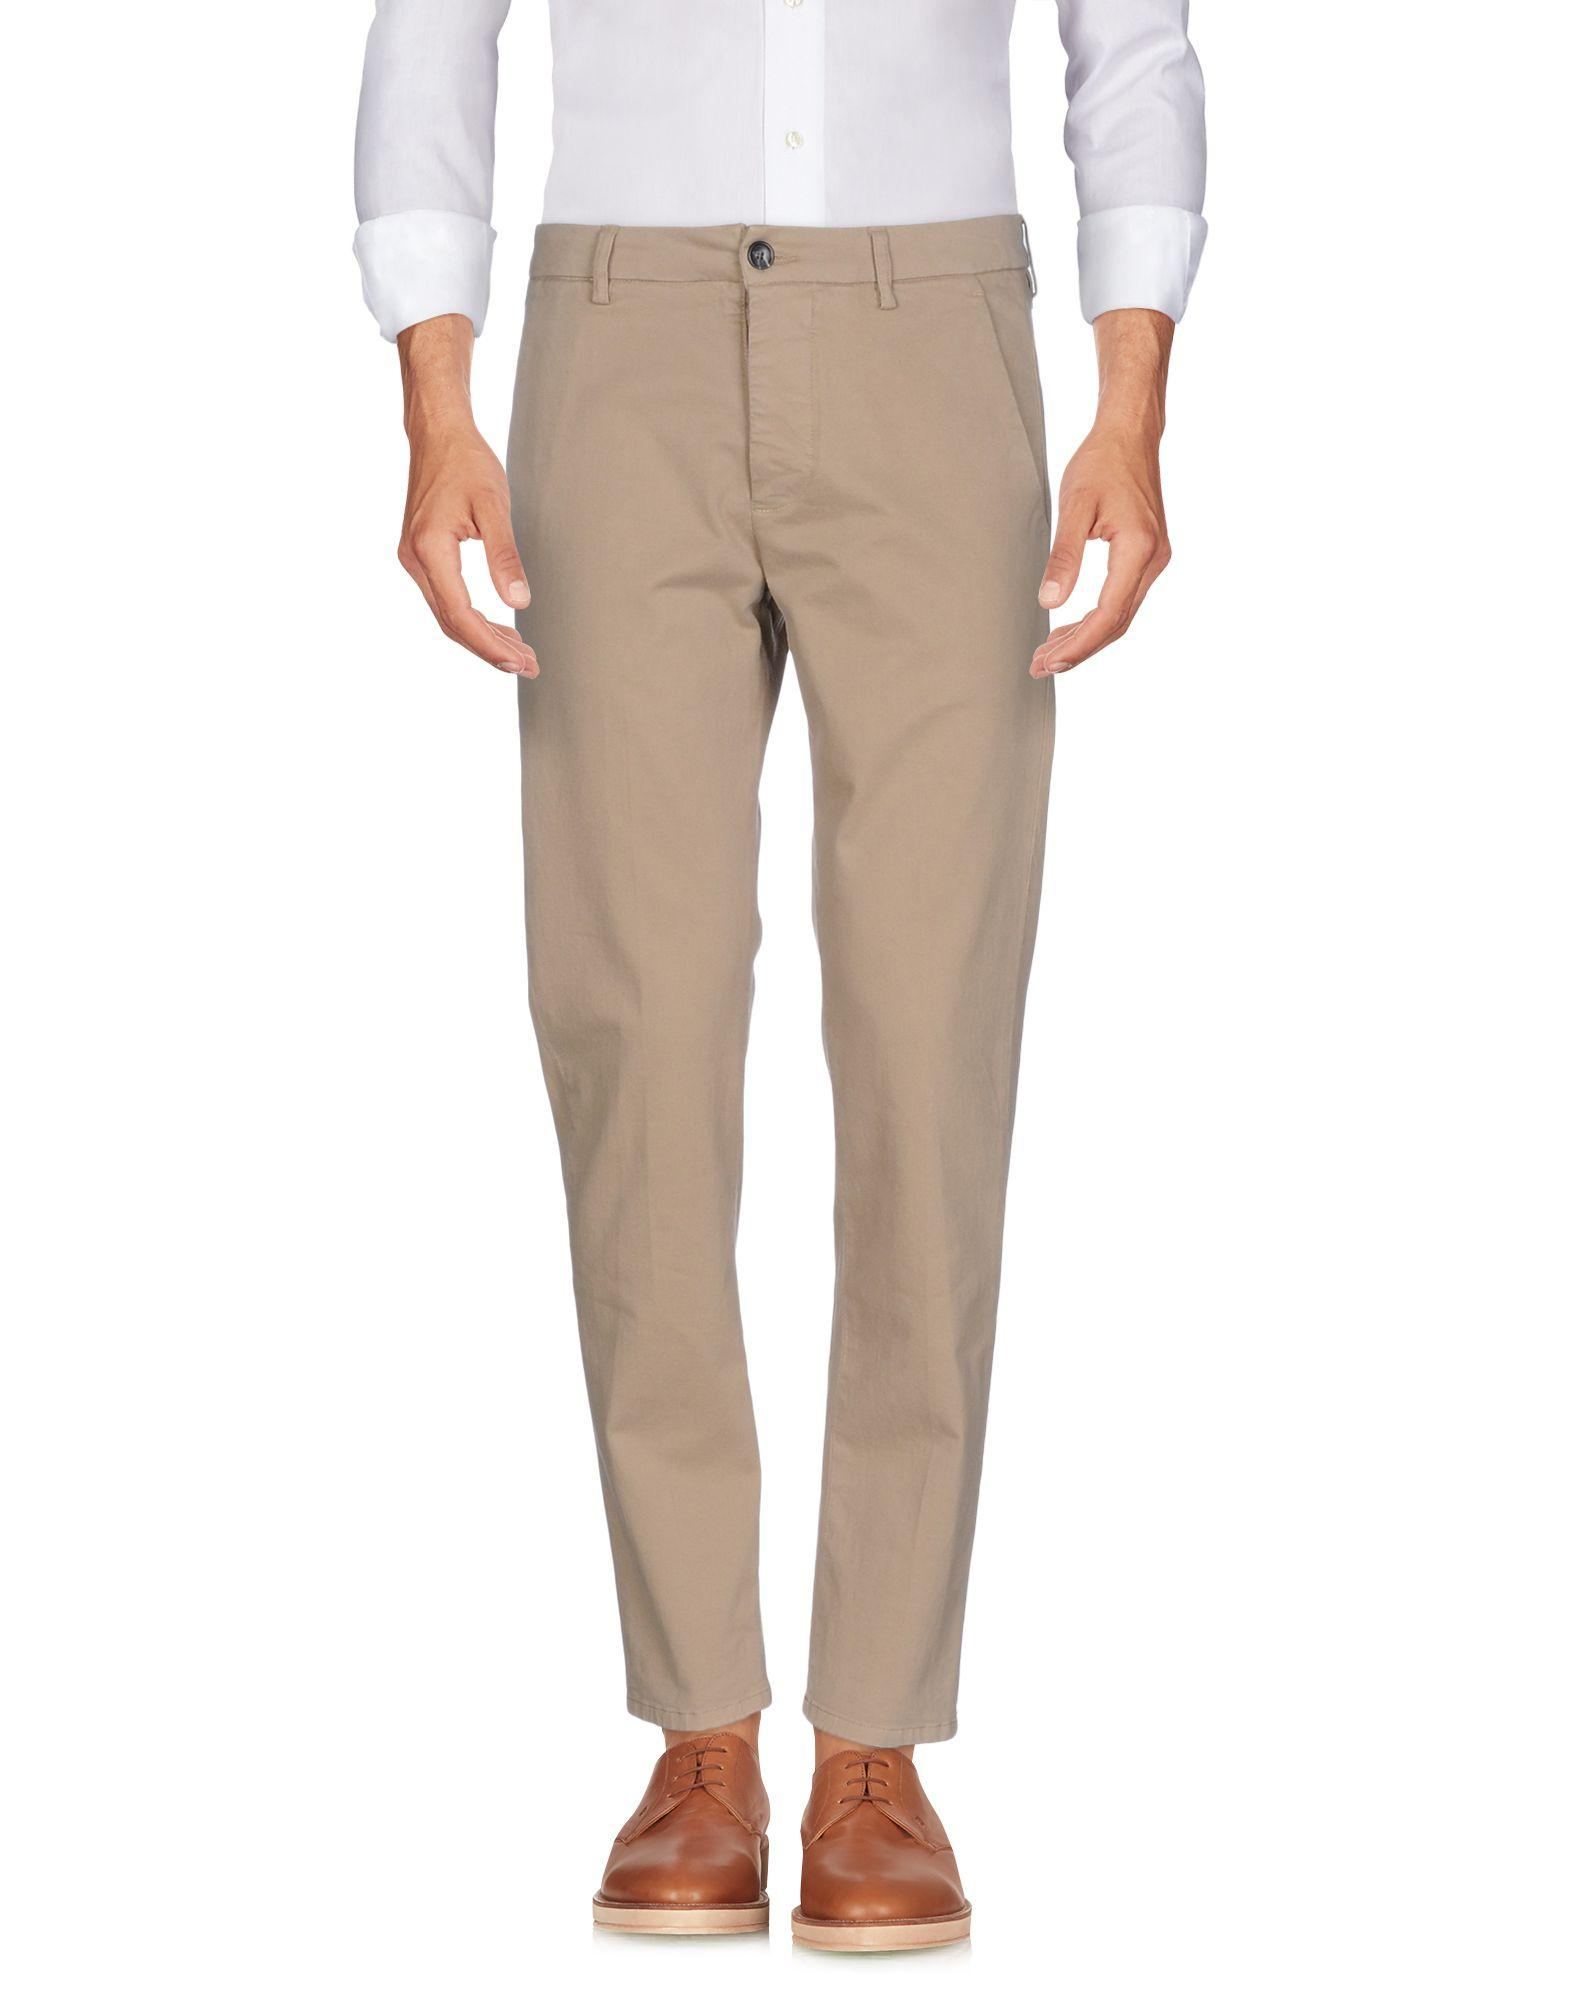 Low Brand Casual Pants In Sand